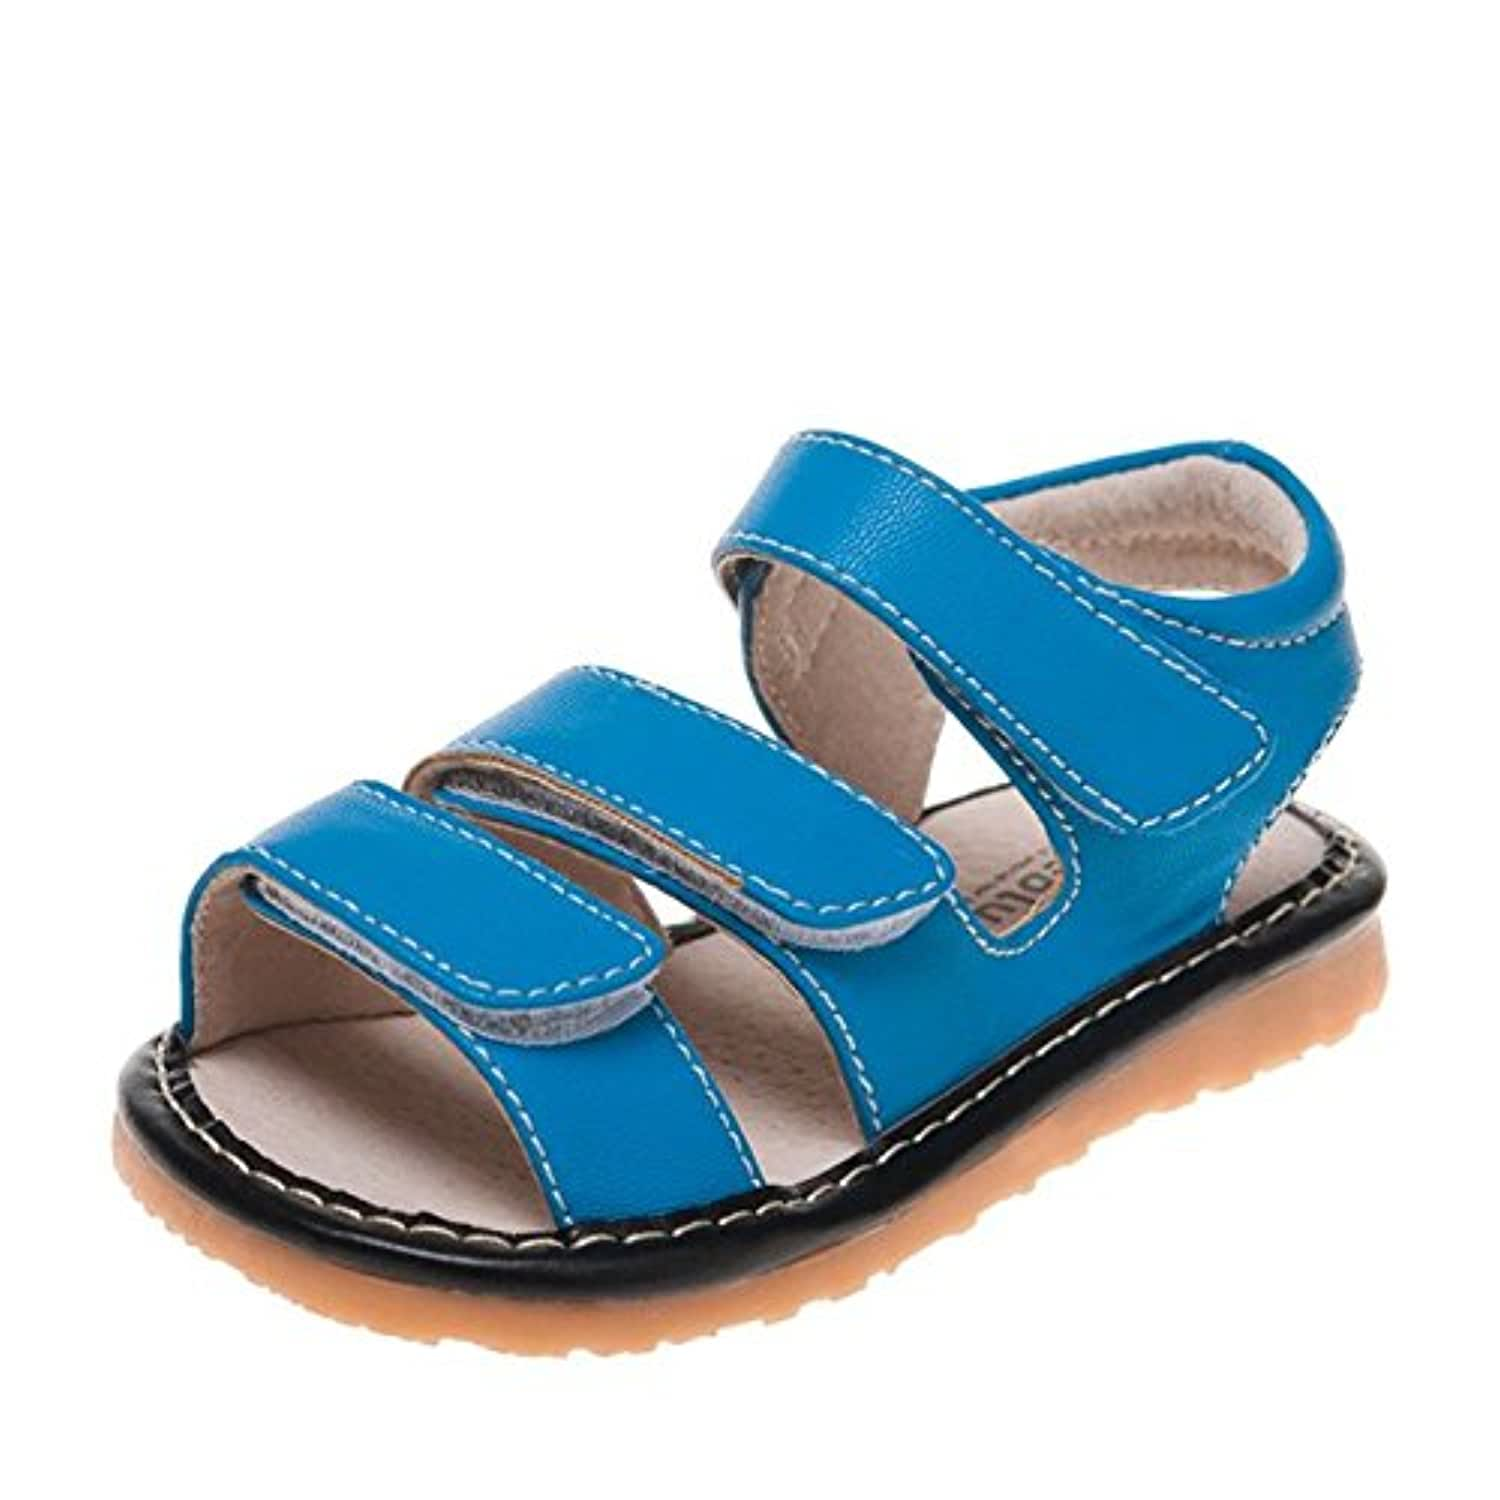 Little Blue Lamb - Squeaky Leather Toddler boys Shoes   Blue sandals 3 velcro - Size: 20